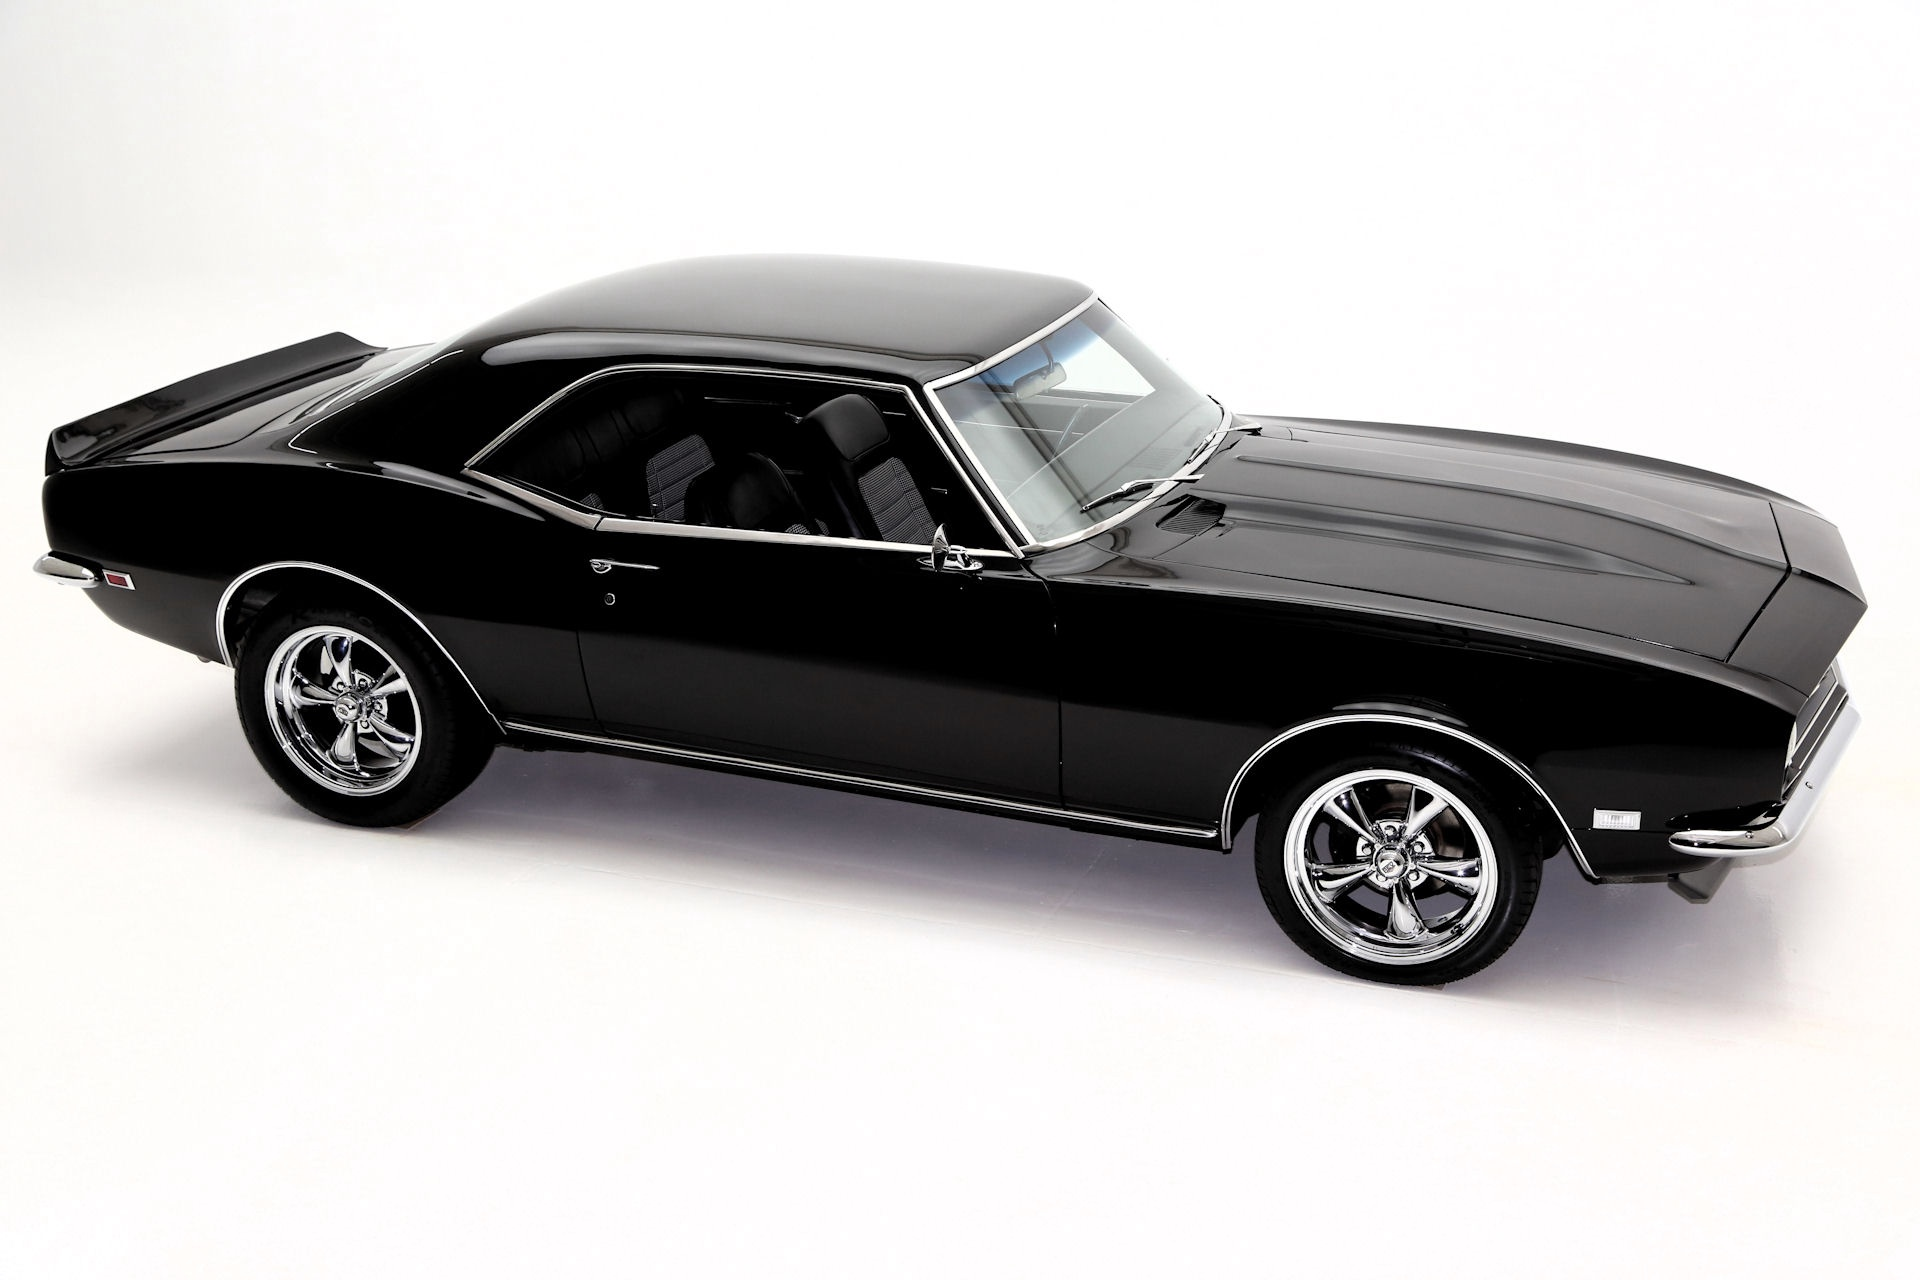 For Sale Used 1968 Chevrolet Camaro Pro-tour Loaded! PS PS AC | American Dream Machines Des Moines IA 50309